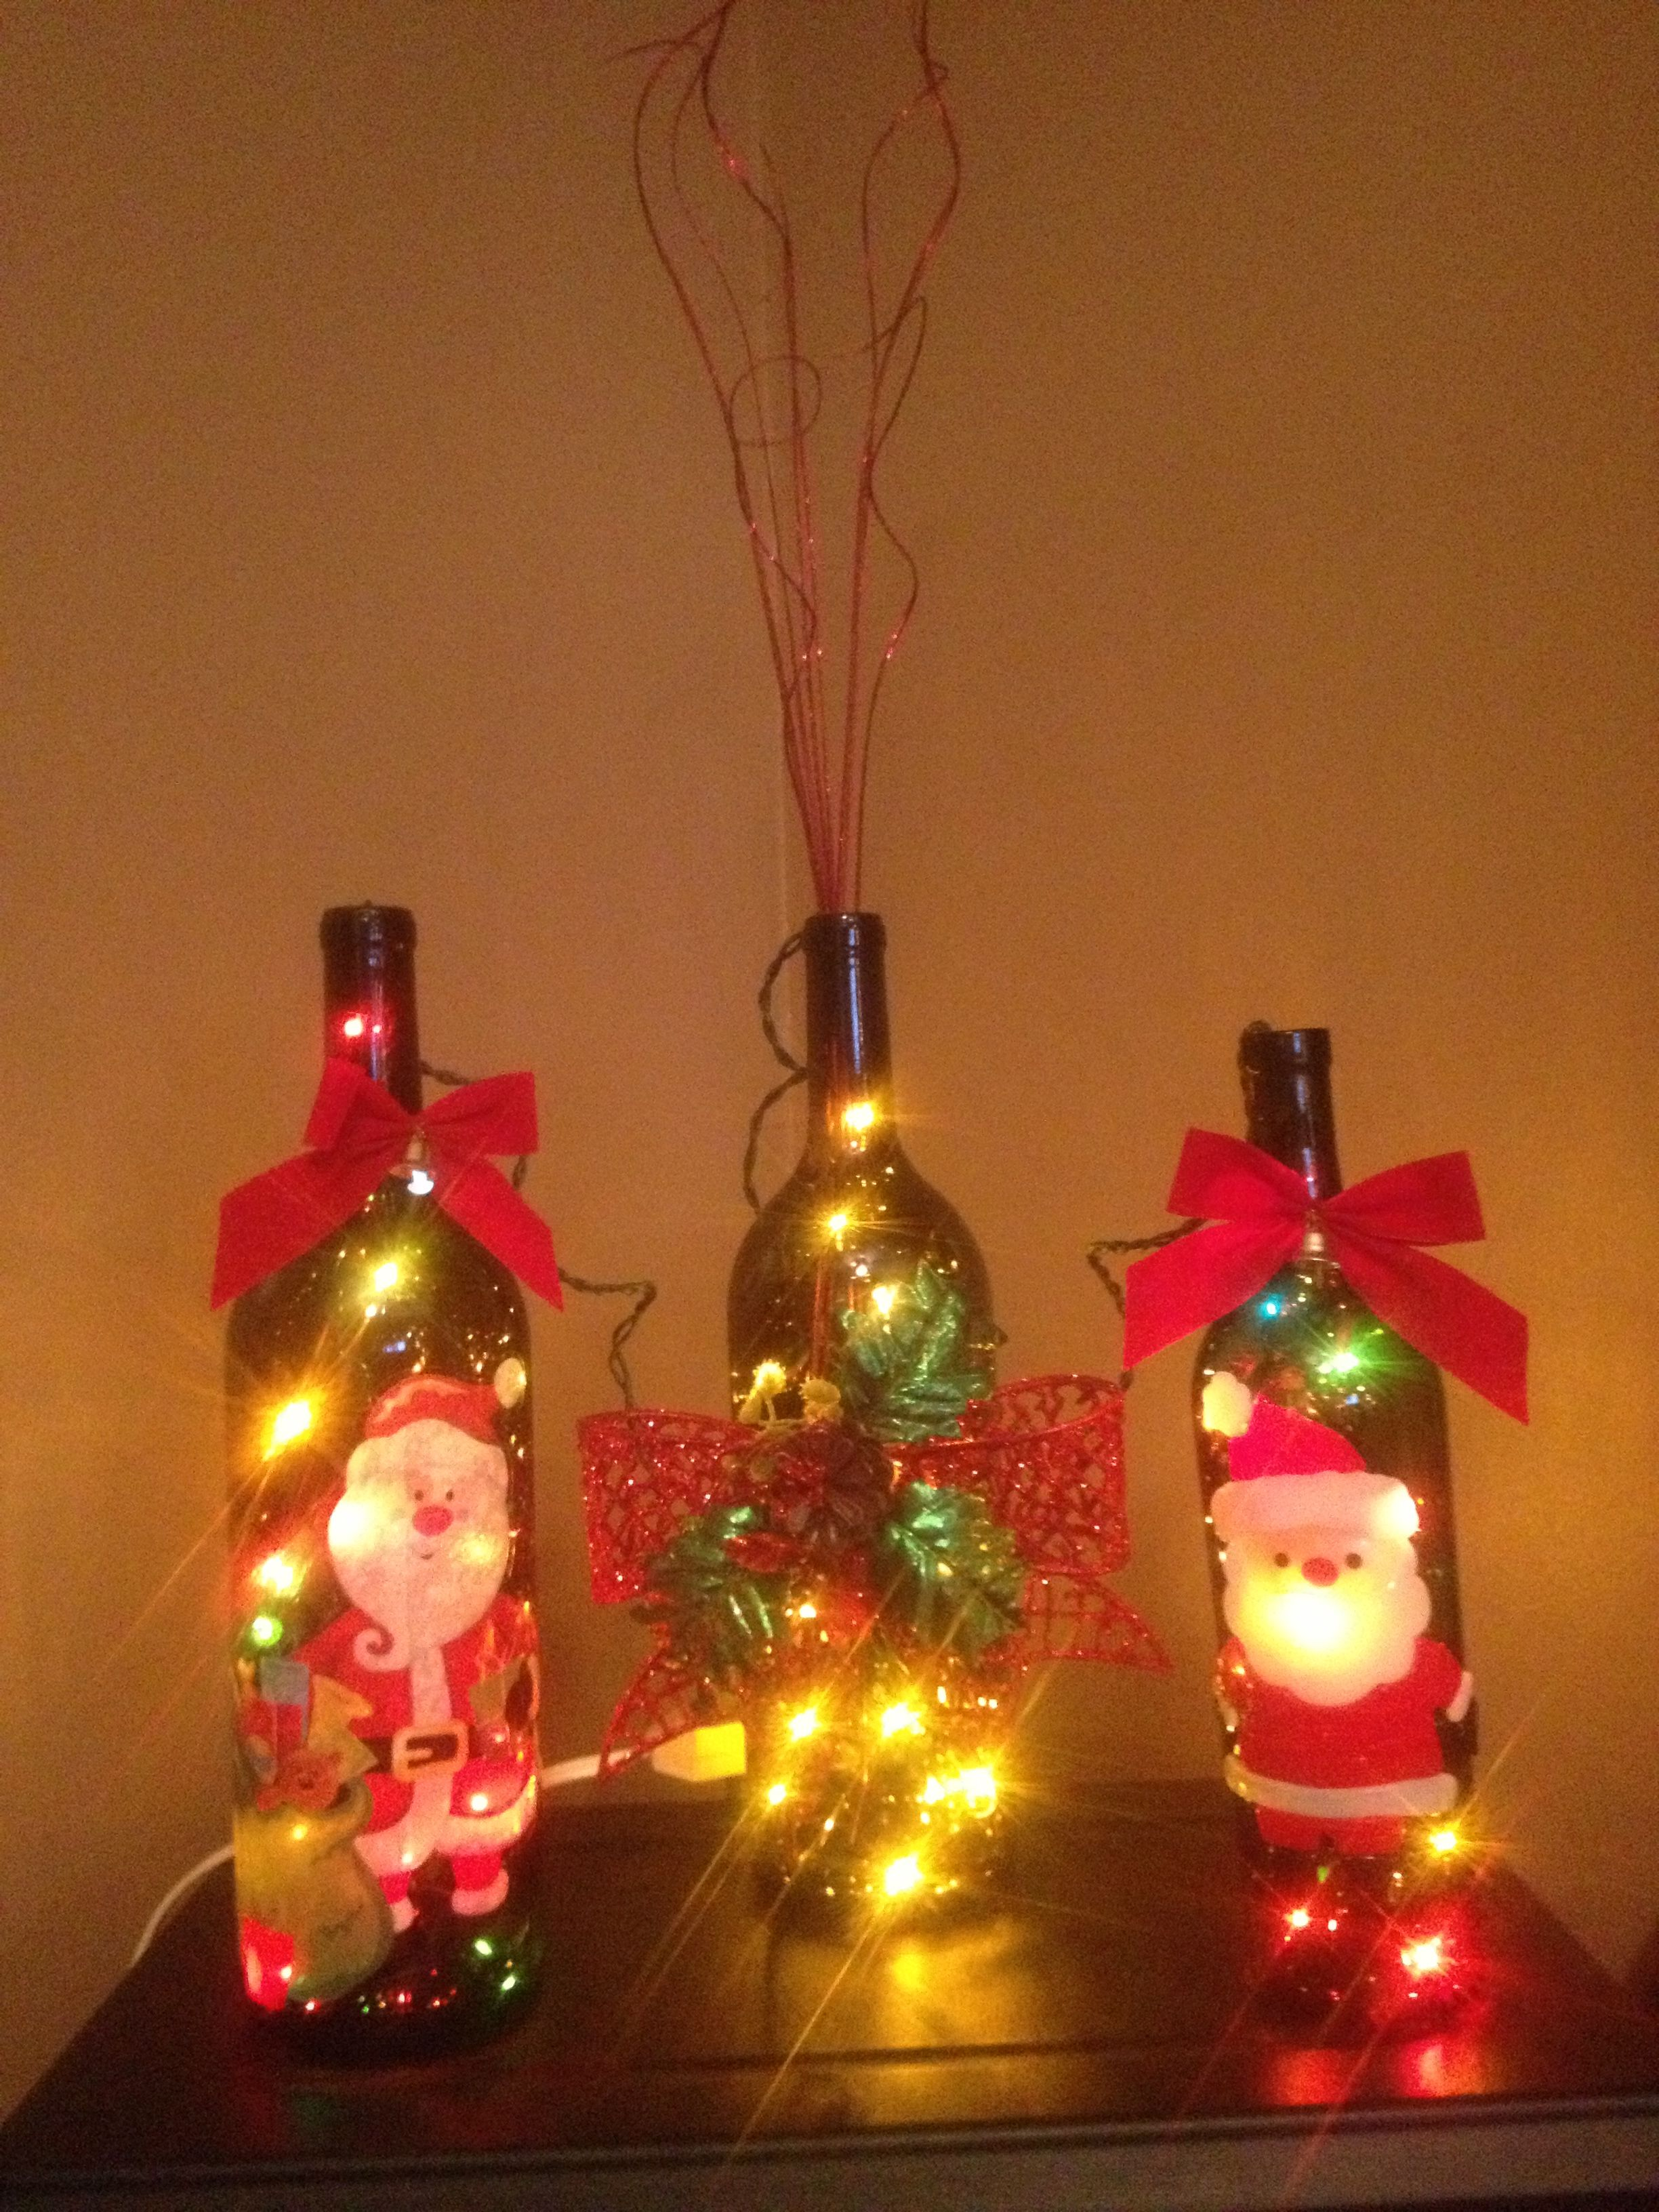 Luminaire Wine Bottles I Made For Xmas